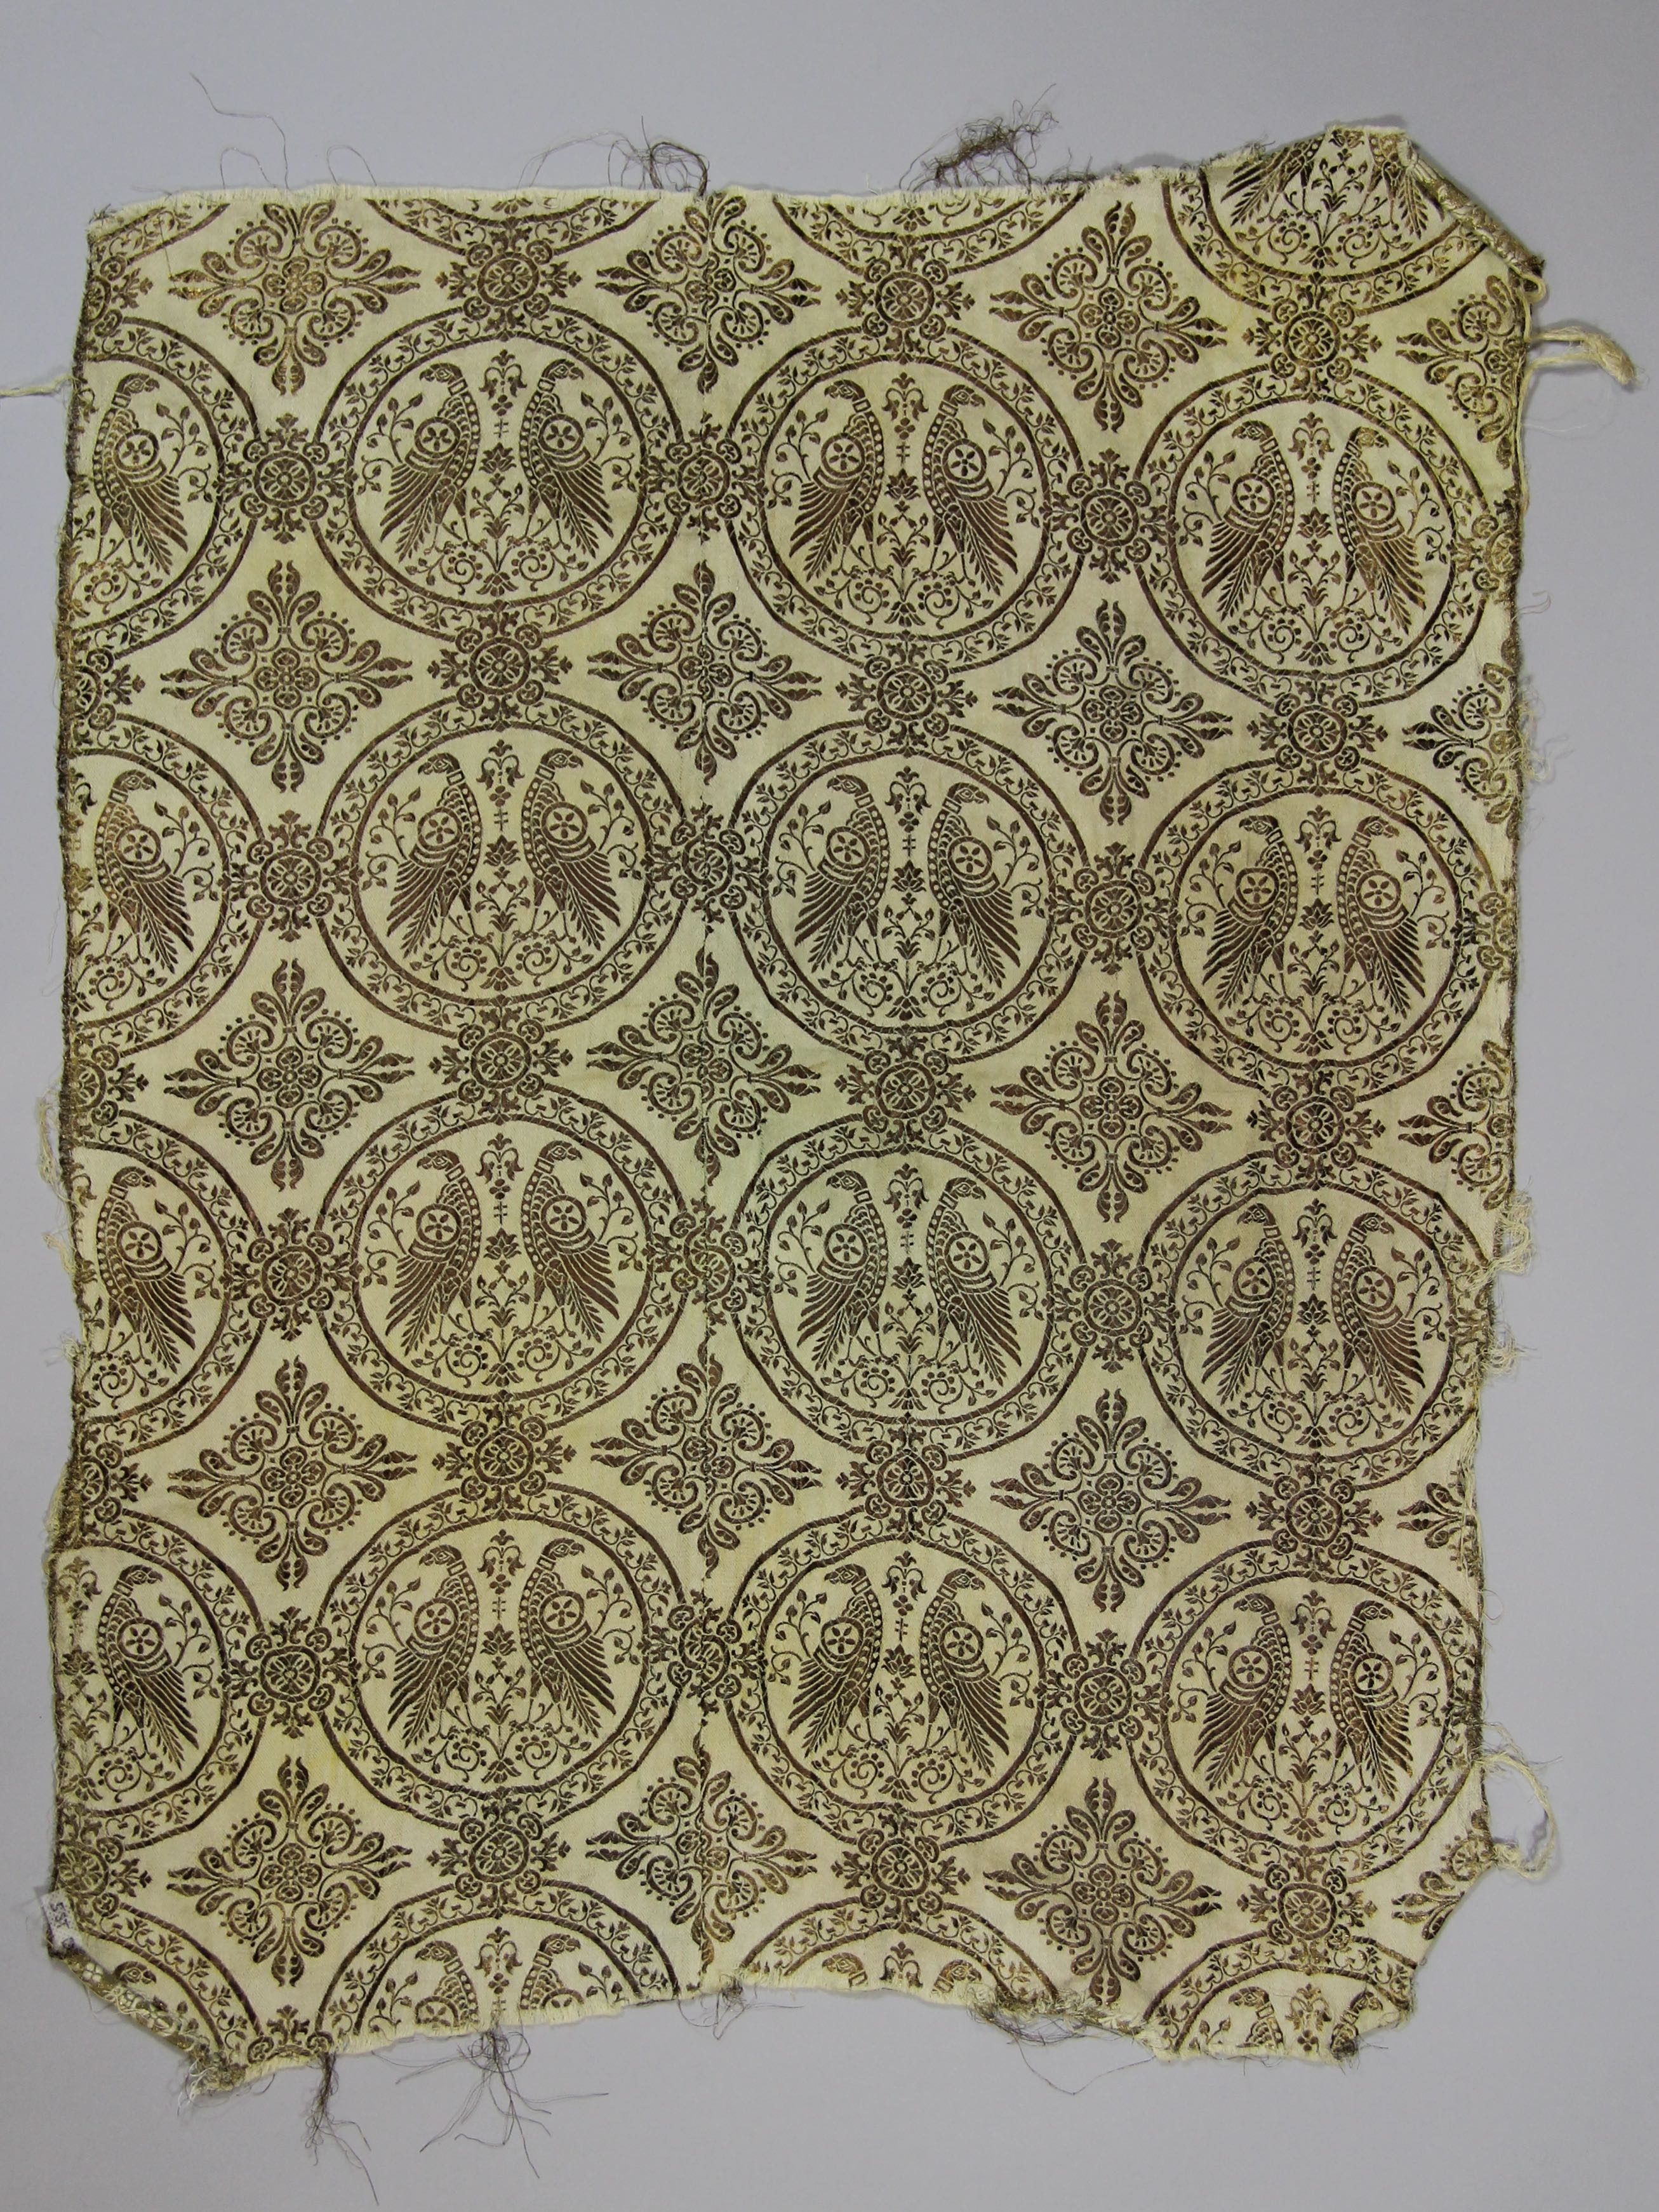 Fabric with golden roundels (fragment)